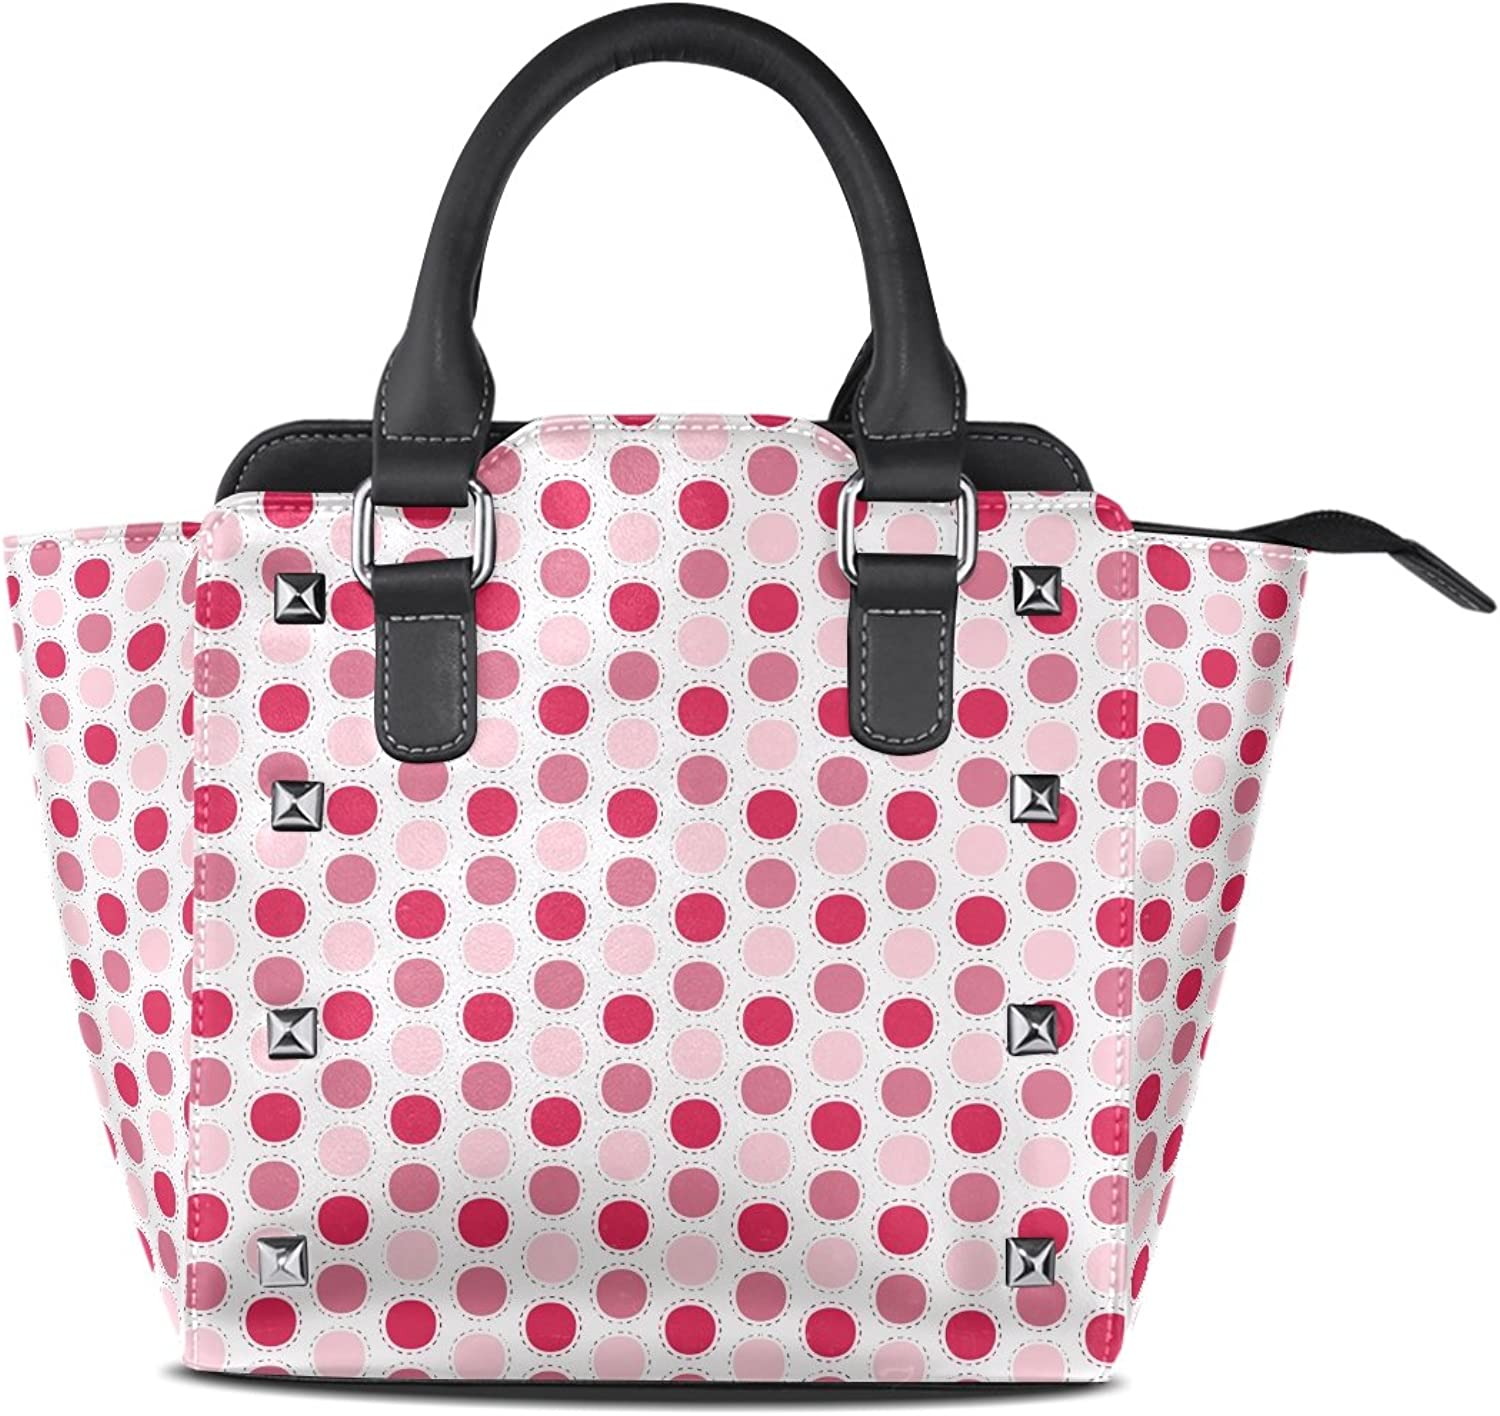 Sunlome Cute Polka Dots Print Women's Leather Tote Shoulder Bags Handbags